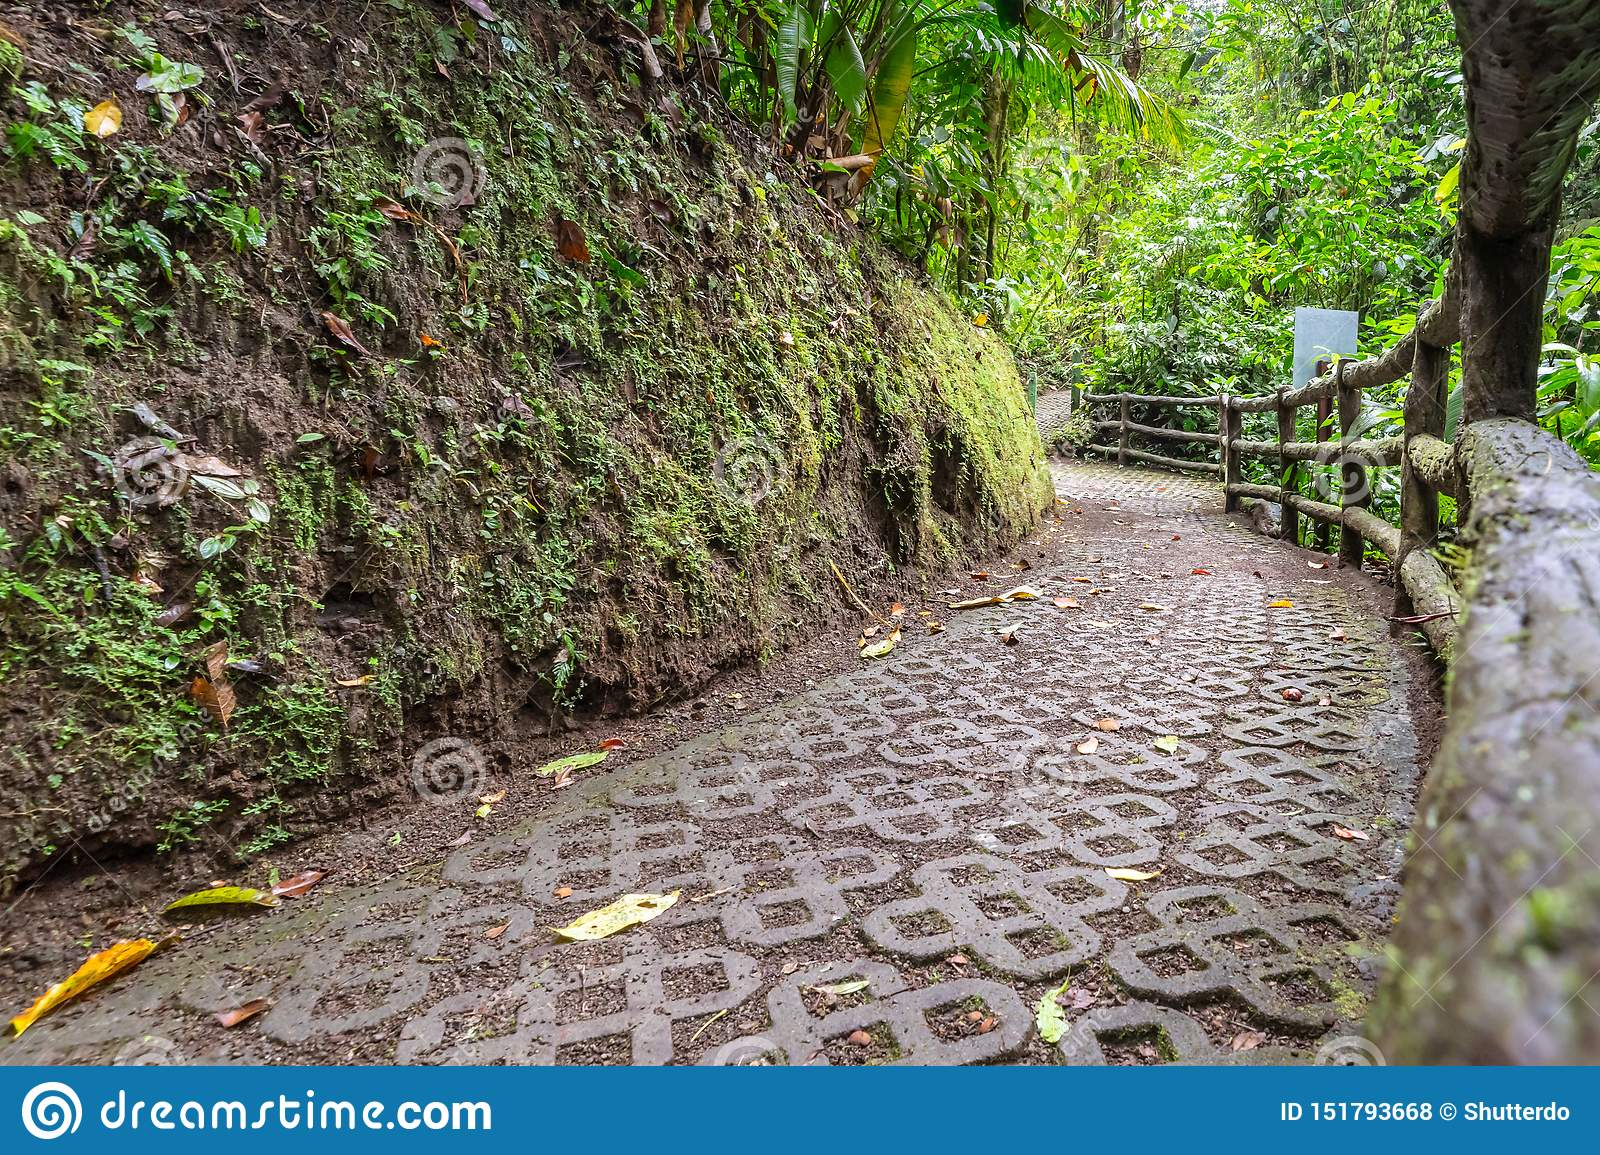 Stone walking path with tree branch railing through the rainforest